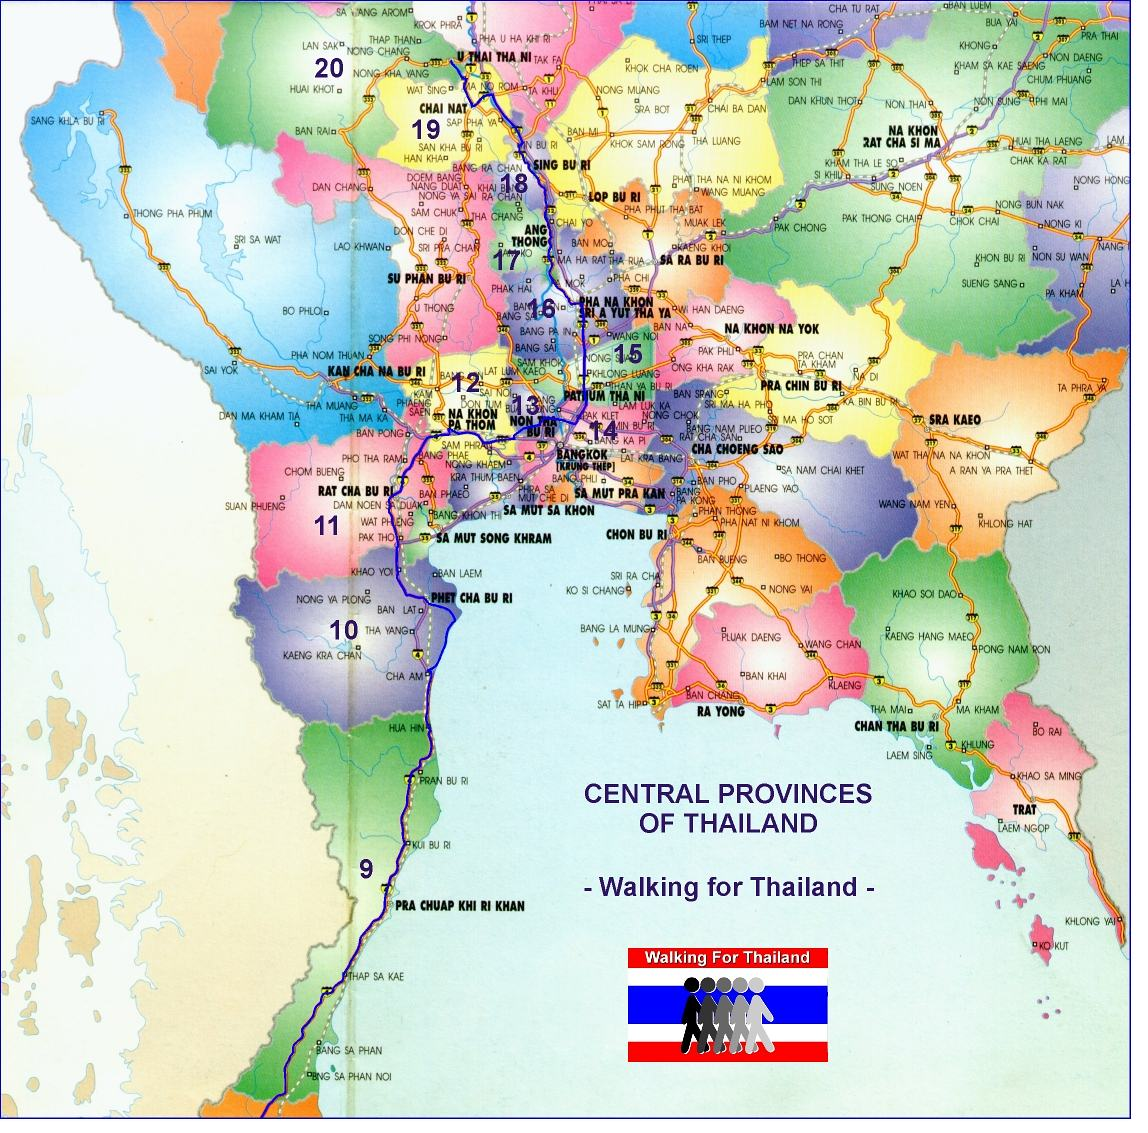 Thailand: Walking For Thailand